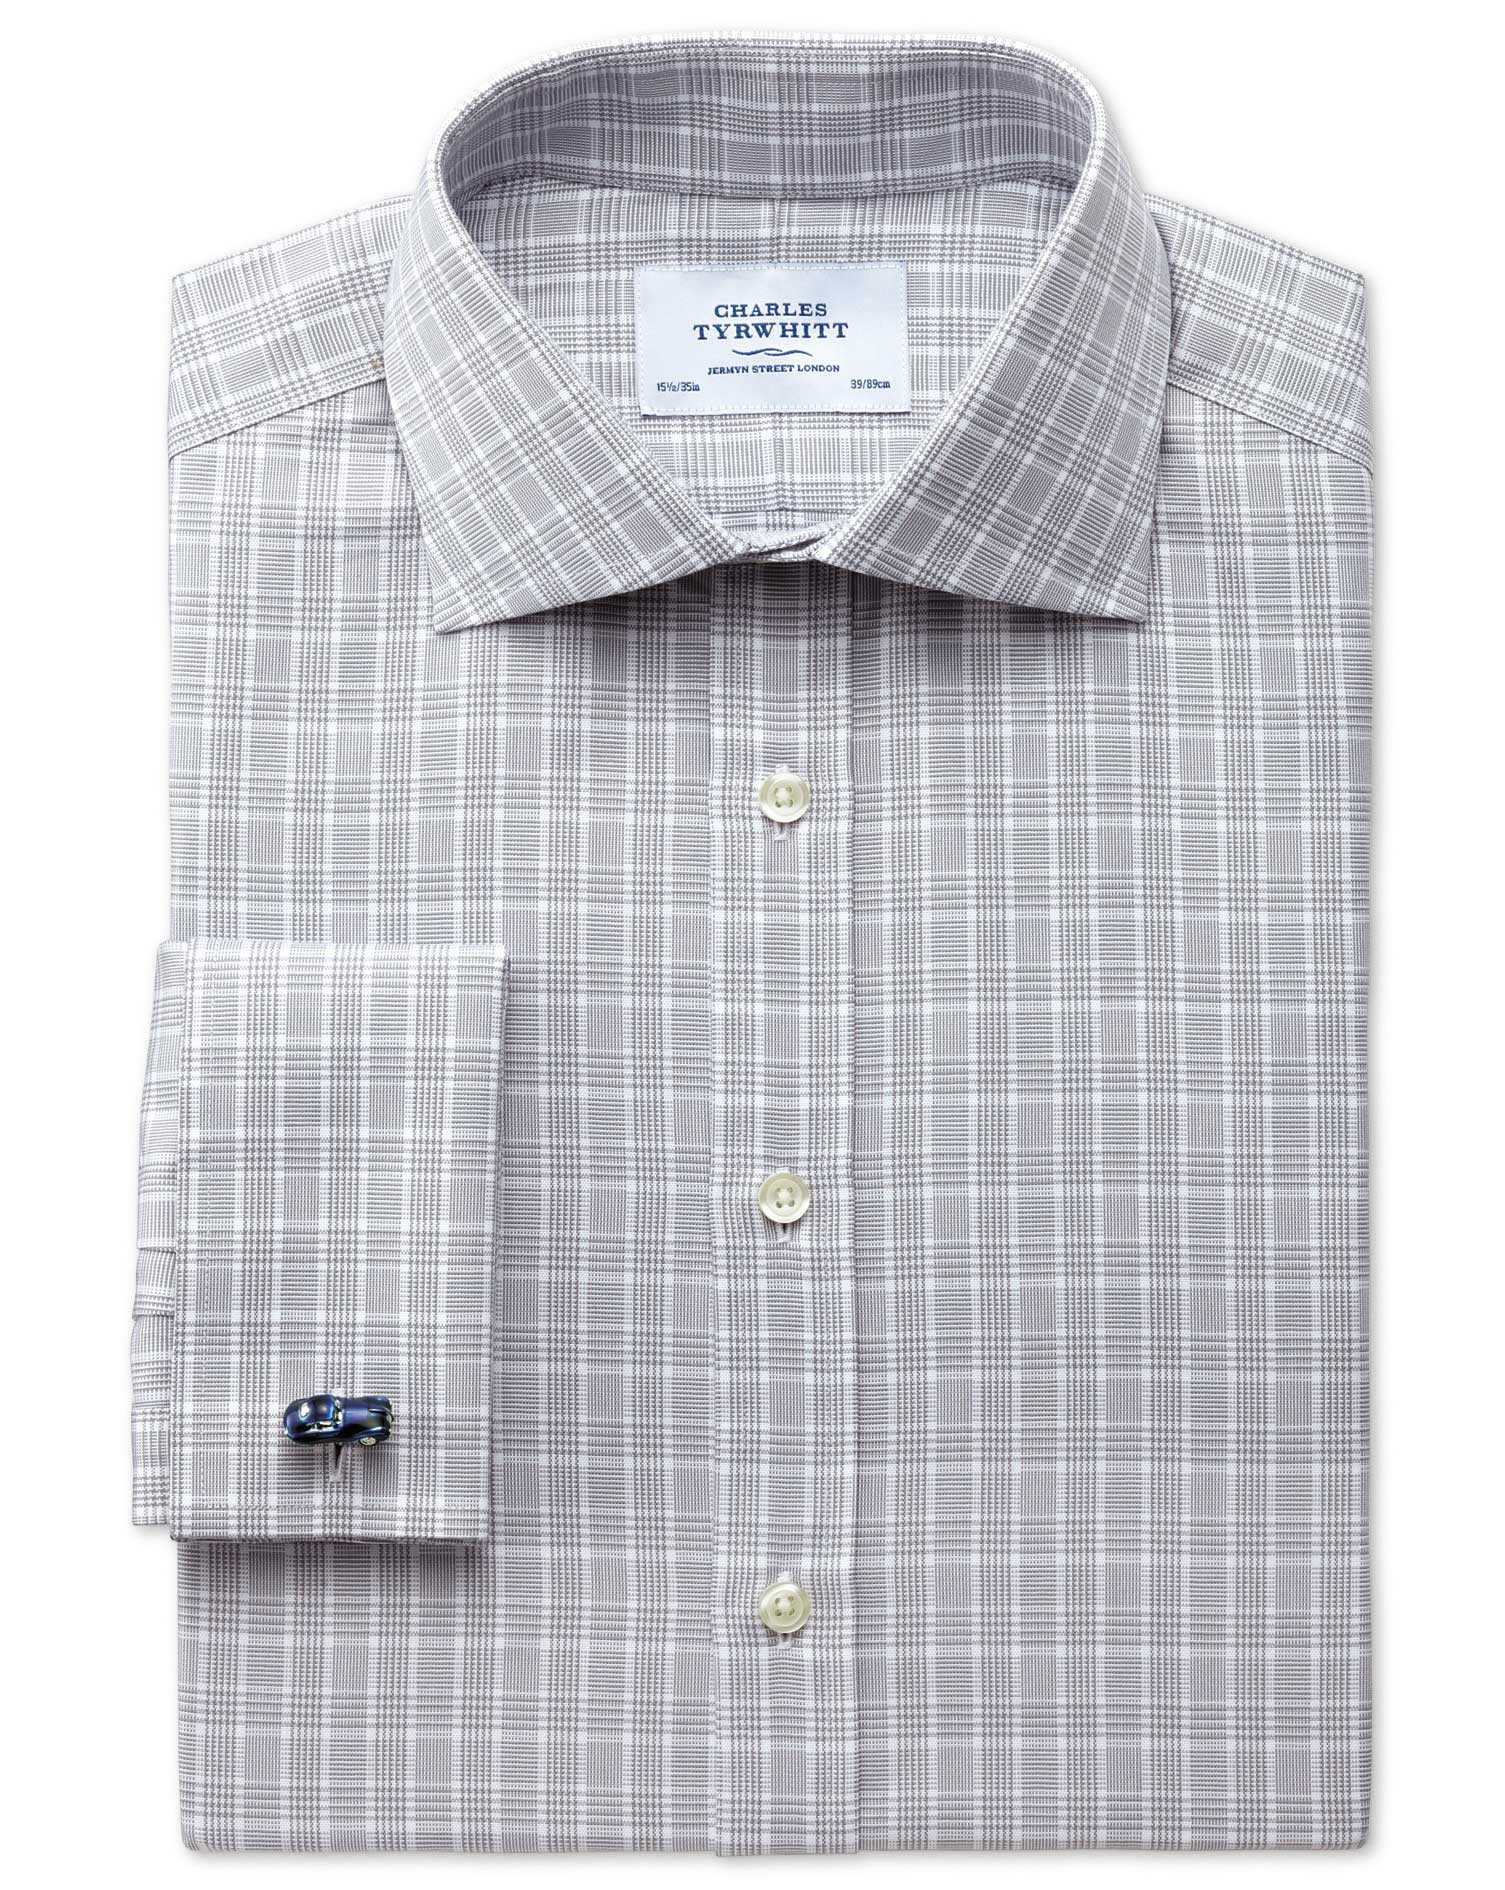 Classic Fit Prince Of Wales Silver Cotton Formal Shirt Double Cuff Size 15/34 by Charles Tyrwhitt